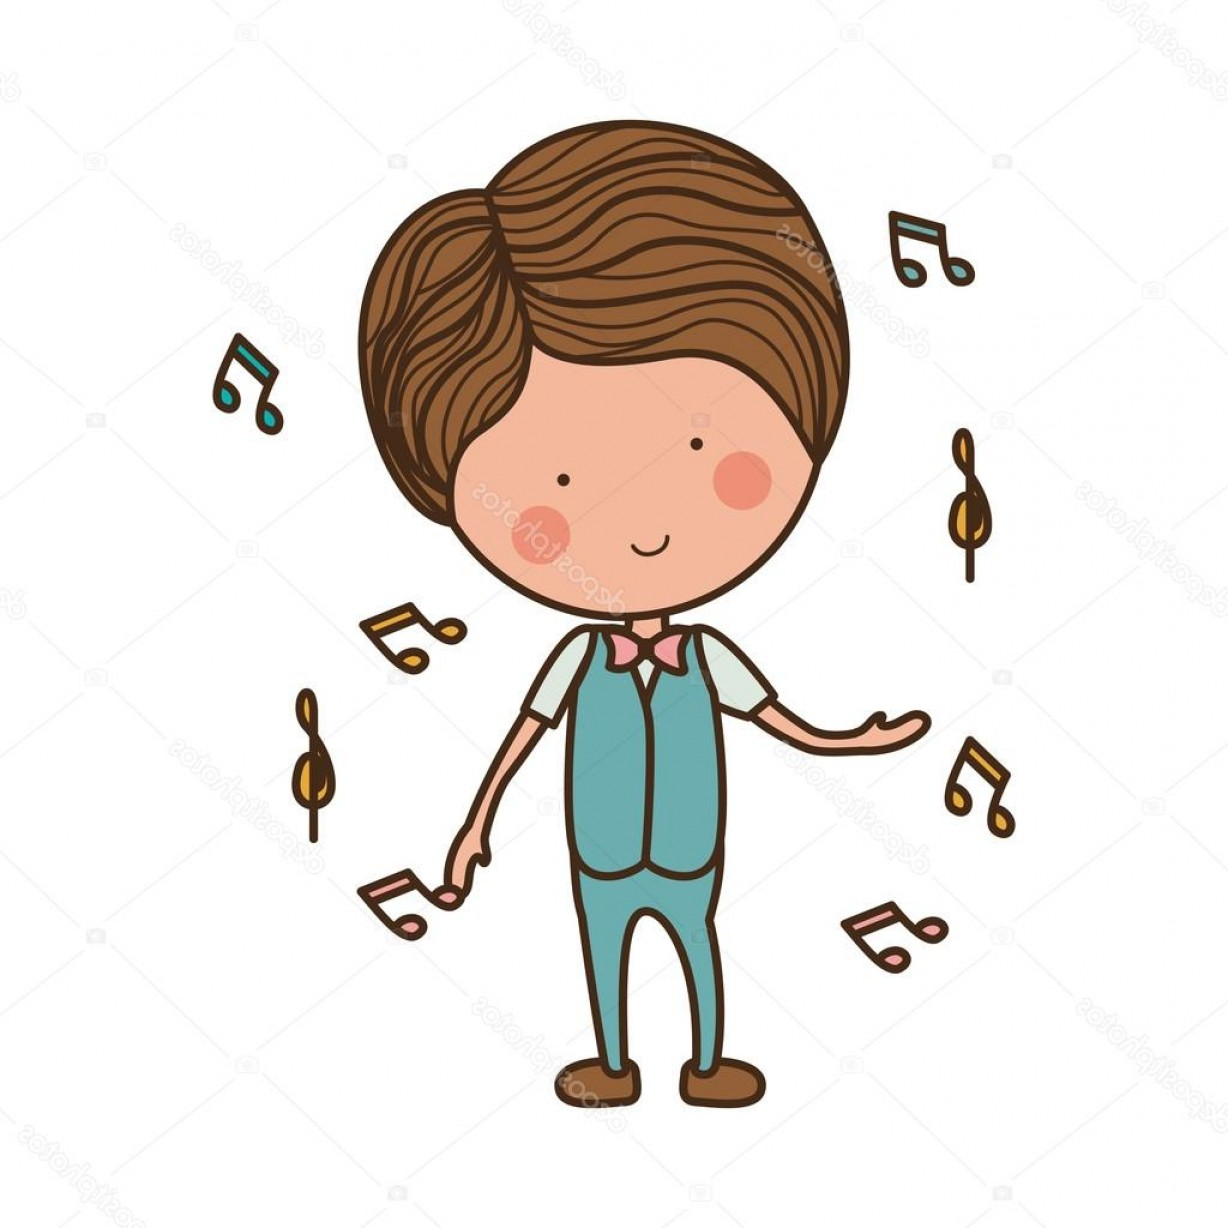 Dancing Musical Notes Vector: Stock Illustration Man Dancing With Musical Notes